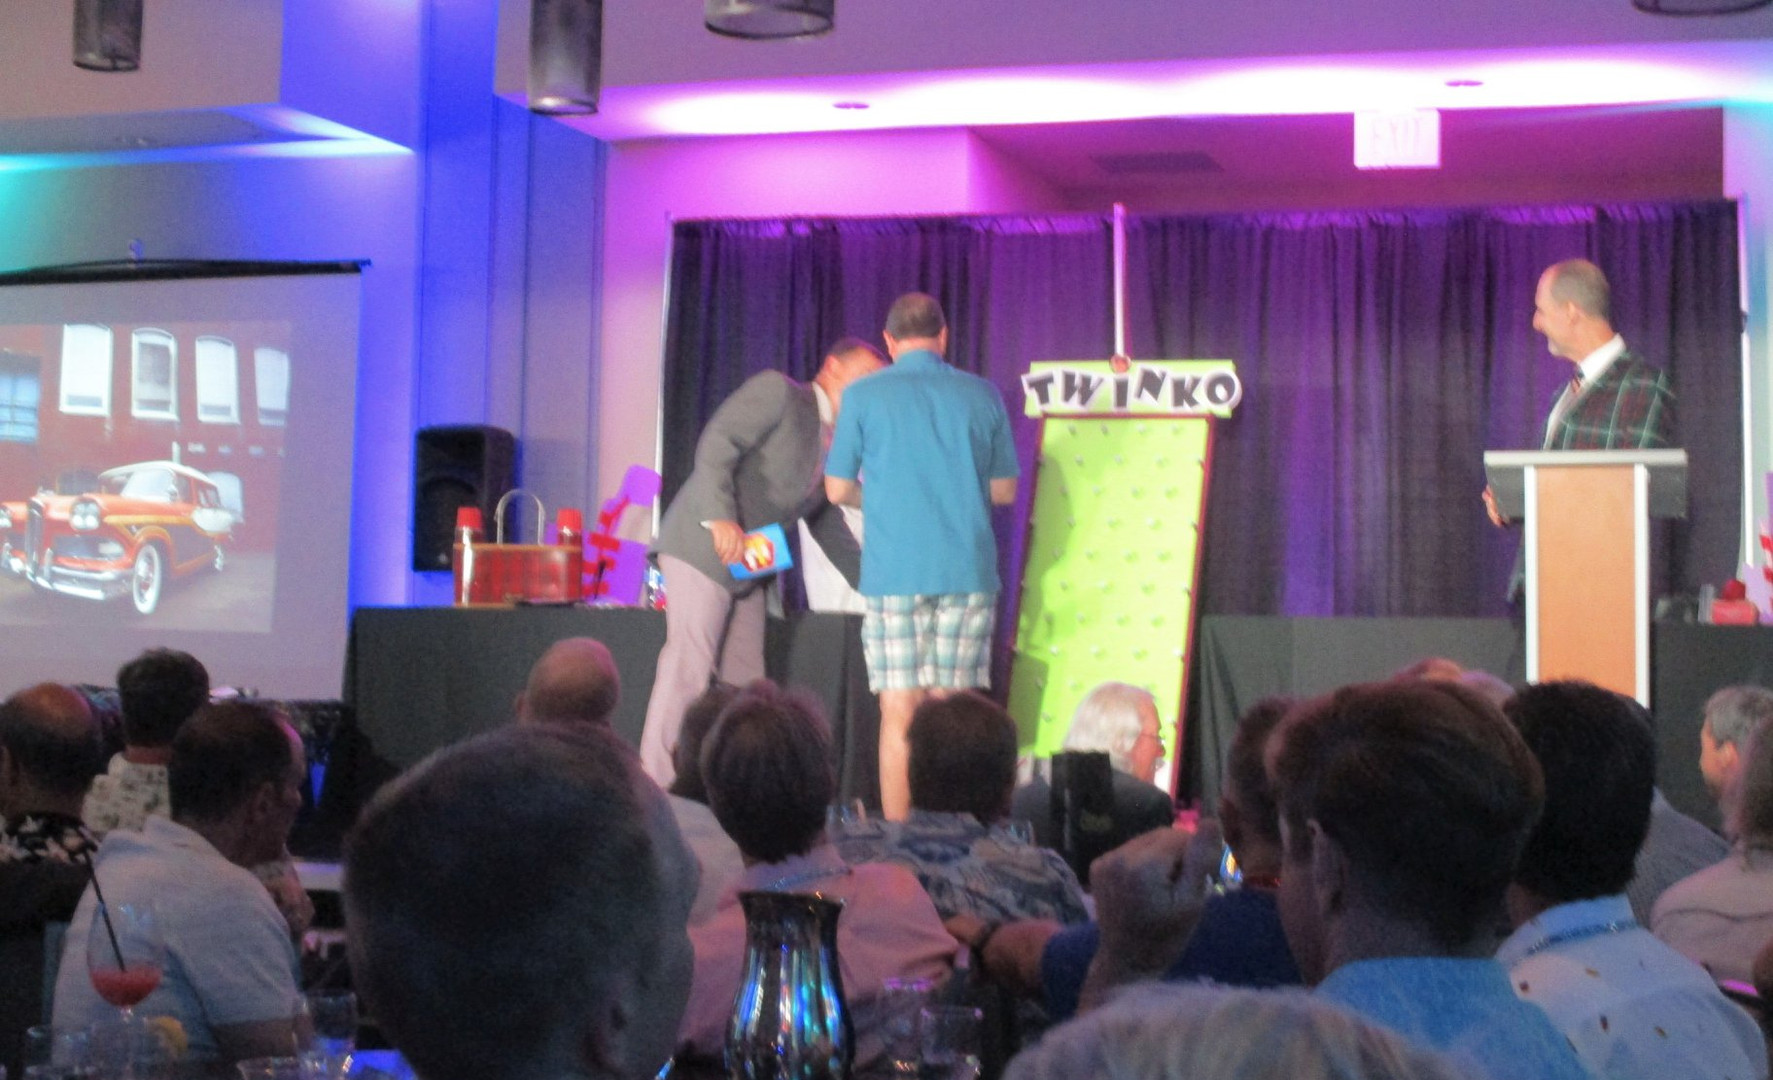 Game Show - Twinko Clint Sandy and Christopher.jpg